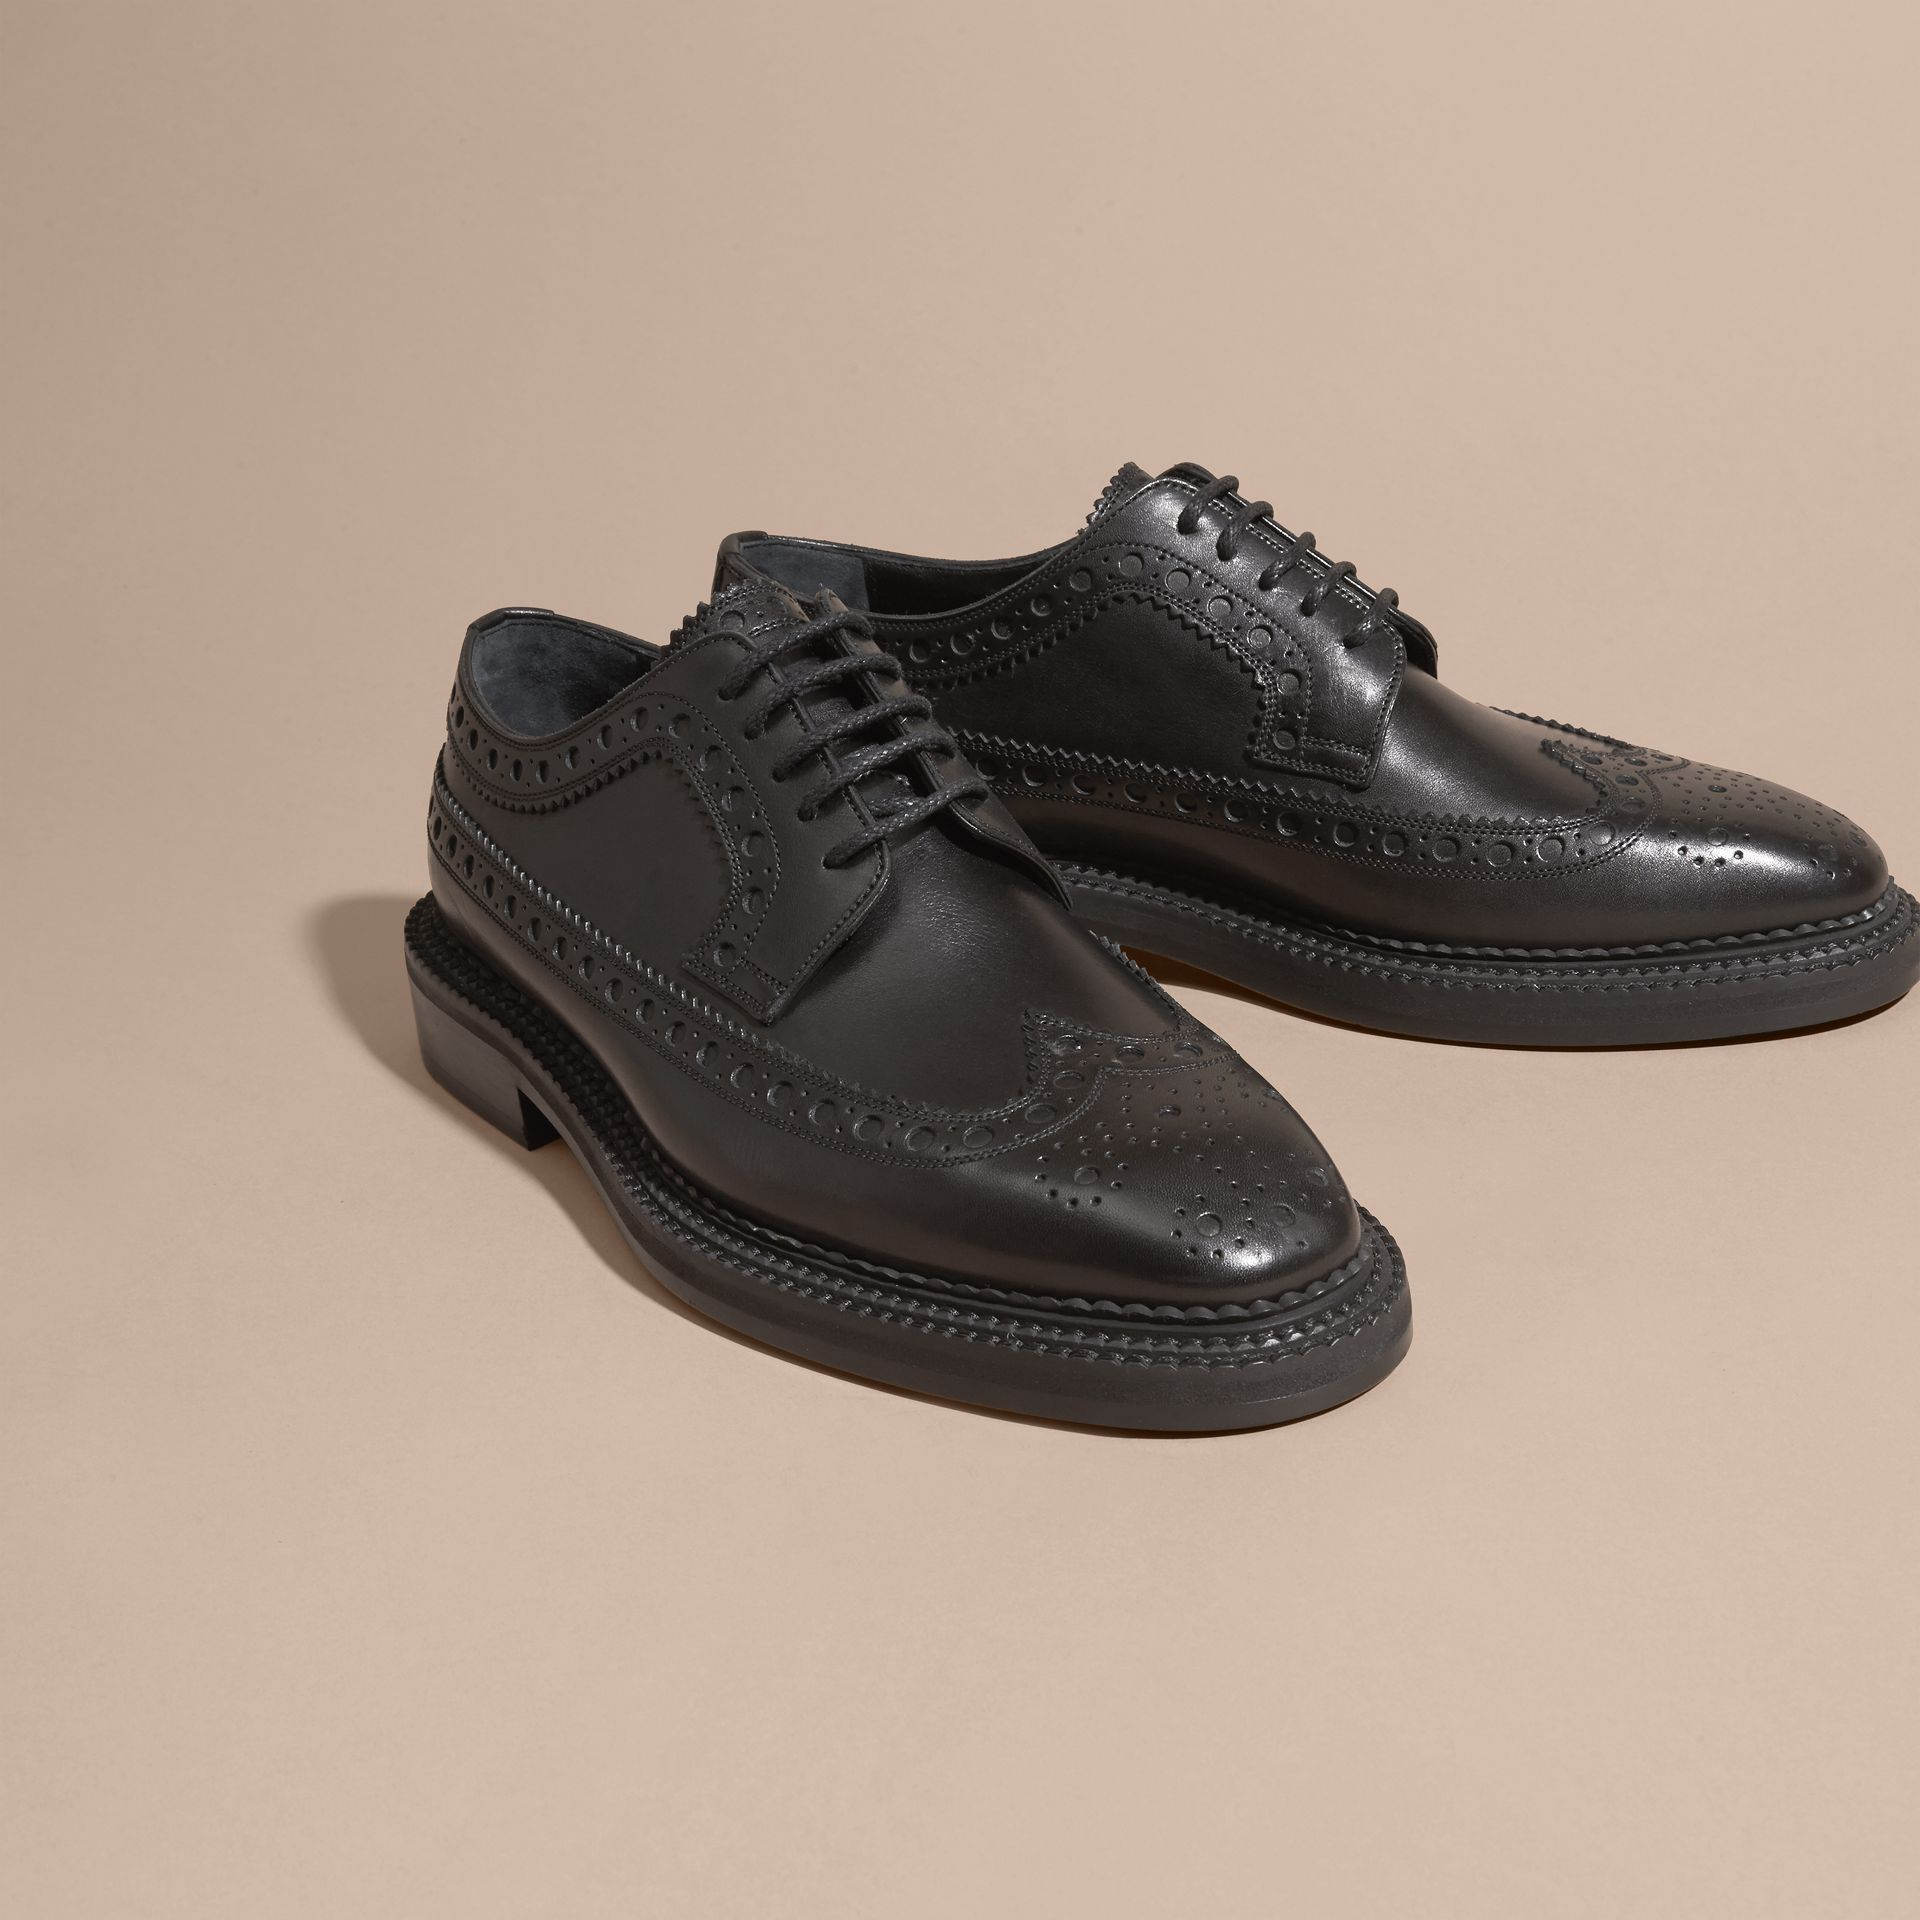 Leather Wingtip Brogues in Black - Men | Burberry Australia - gallery image 3